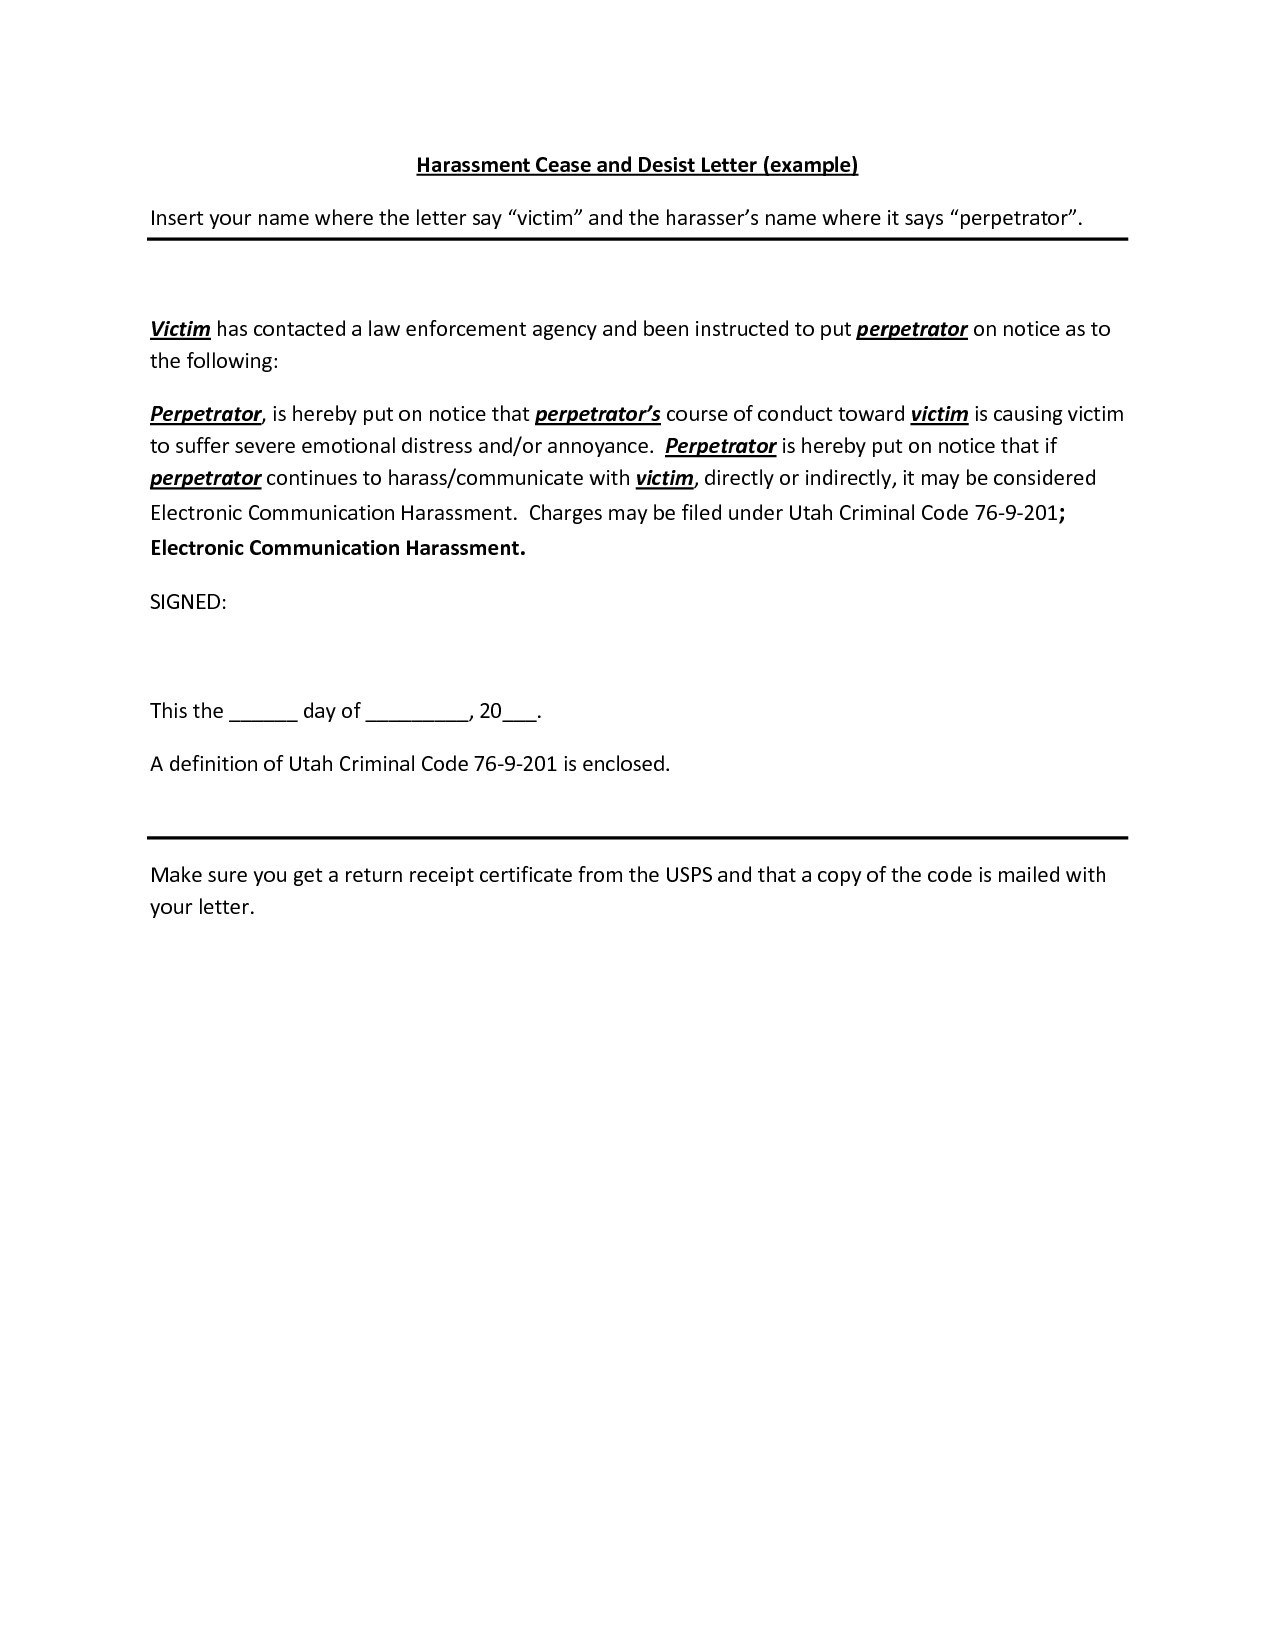 Cease and desist letter harassment template idea throughout